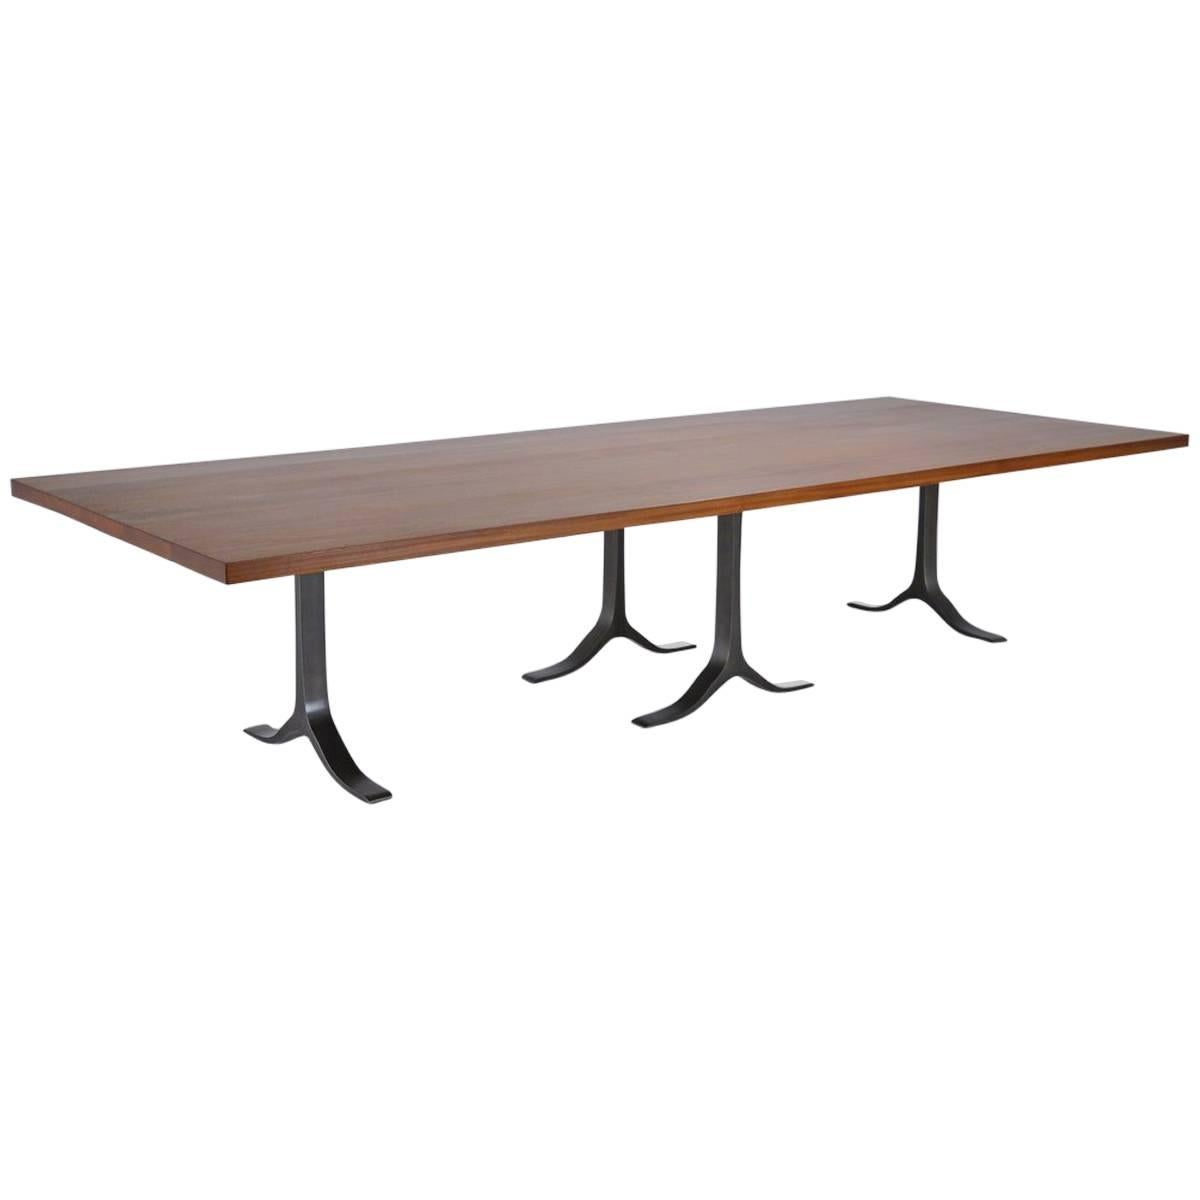 Conference Table, Reclaimed Hardwood, Sand Cast Aluminium Base by P. Tendercool